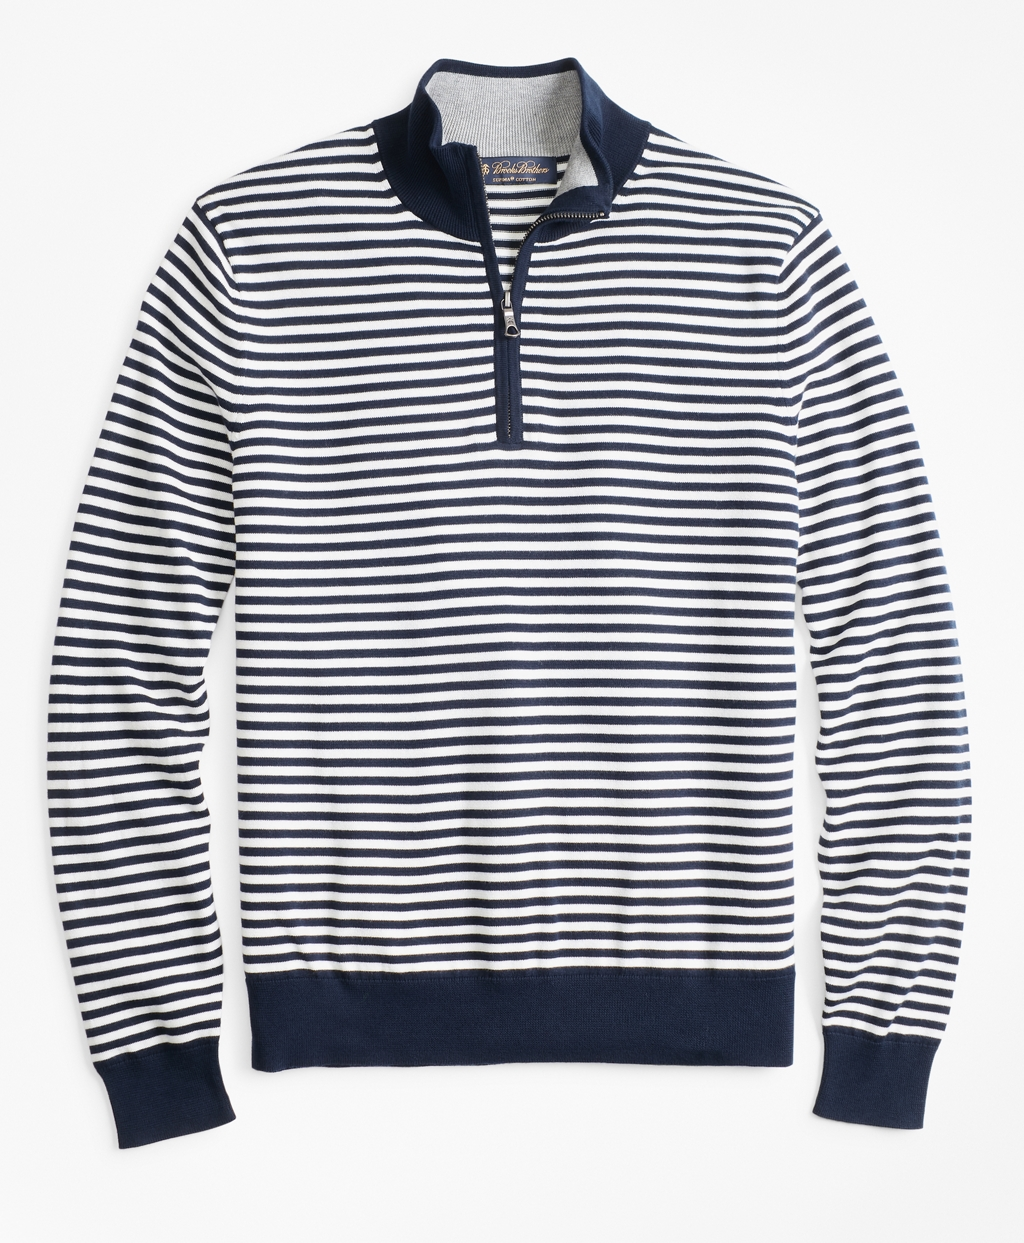 Men's Vintage Sweaters, Retro Jumpers 1920s to 1980s Brooks Brothers Mens Yacht Stripe Half-Zip Sweater $70.80 AT vintagedancer.com